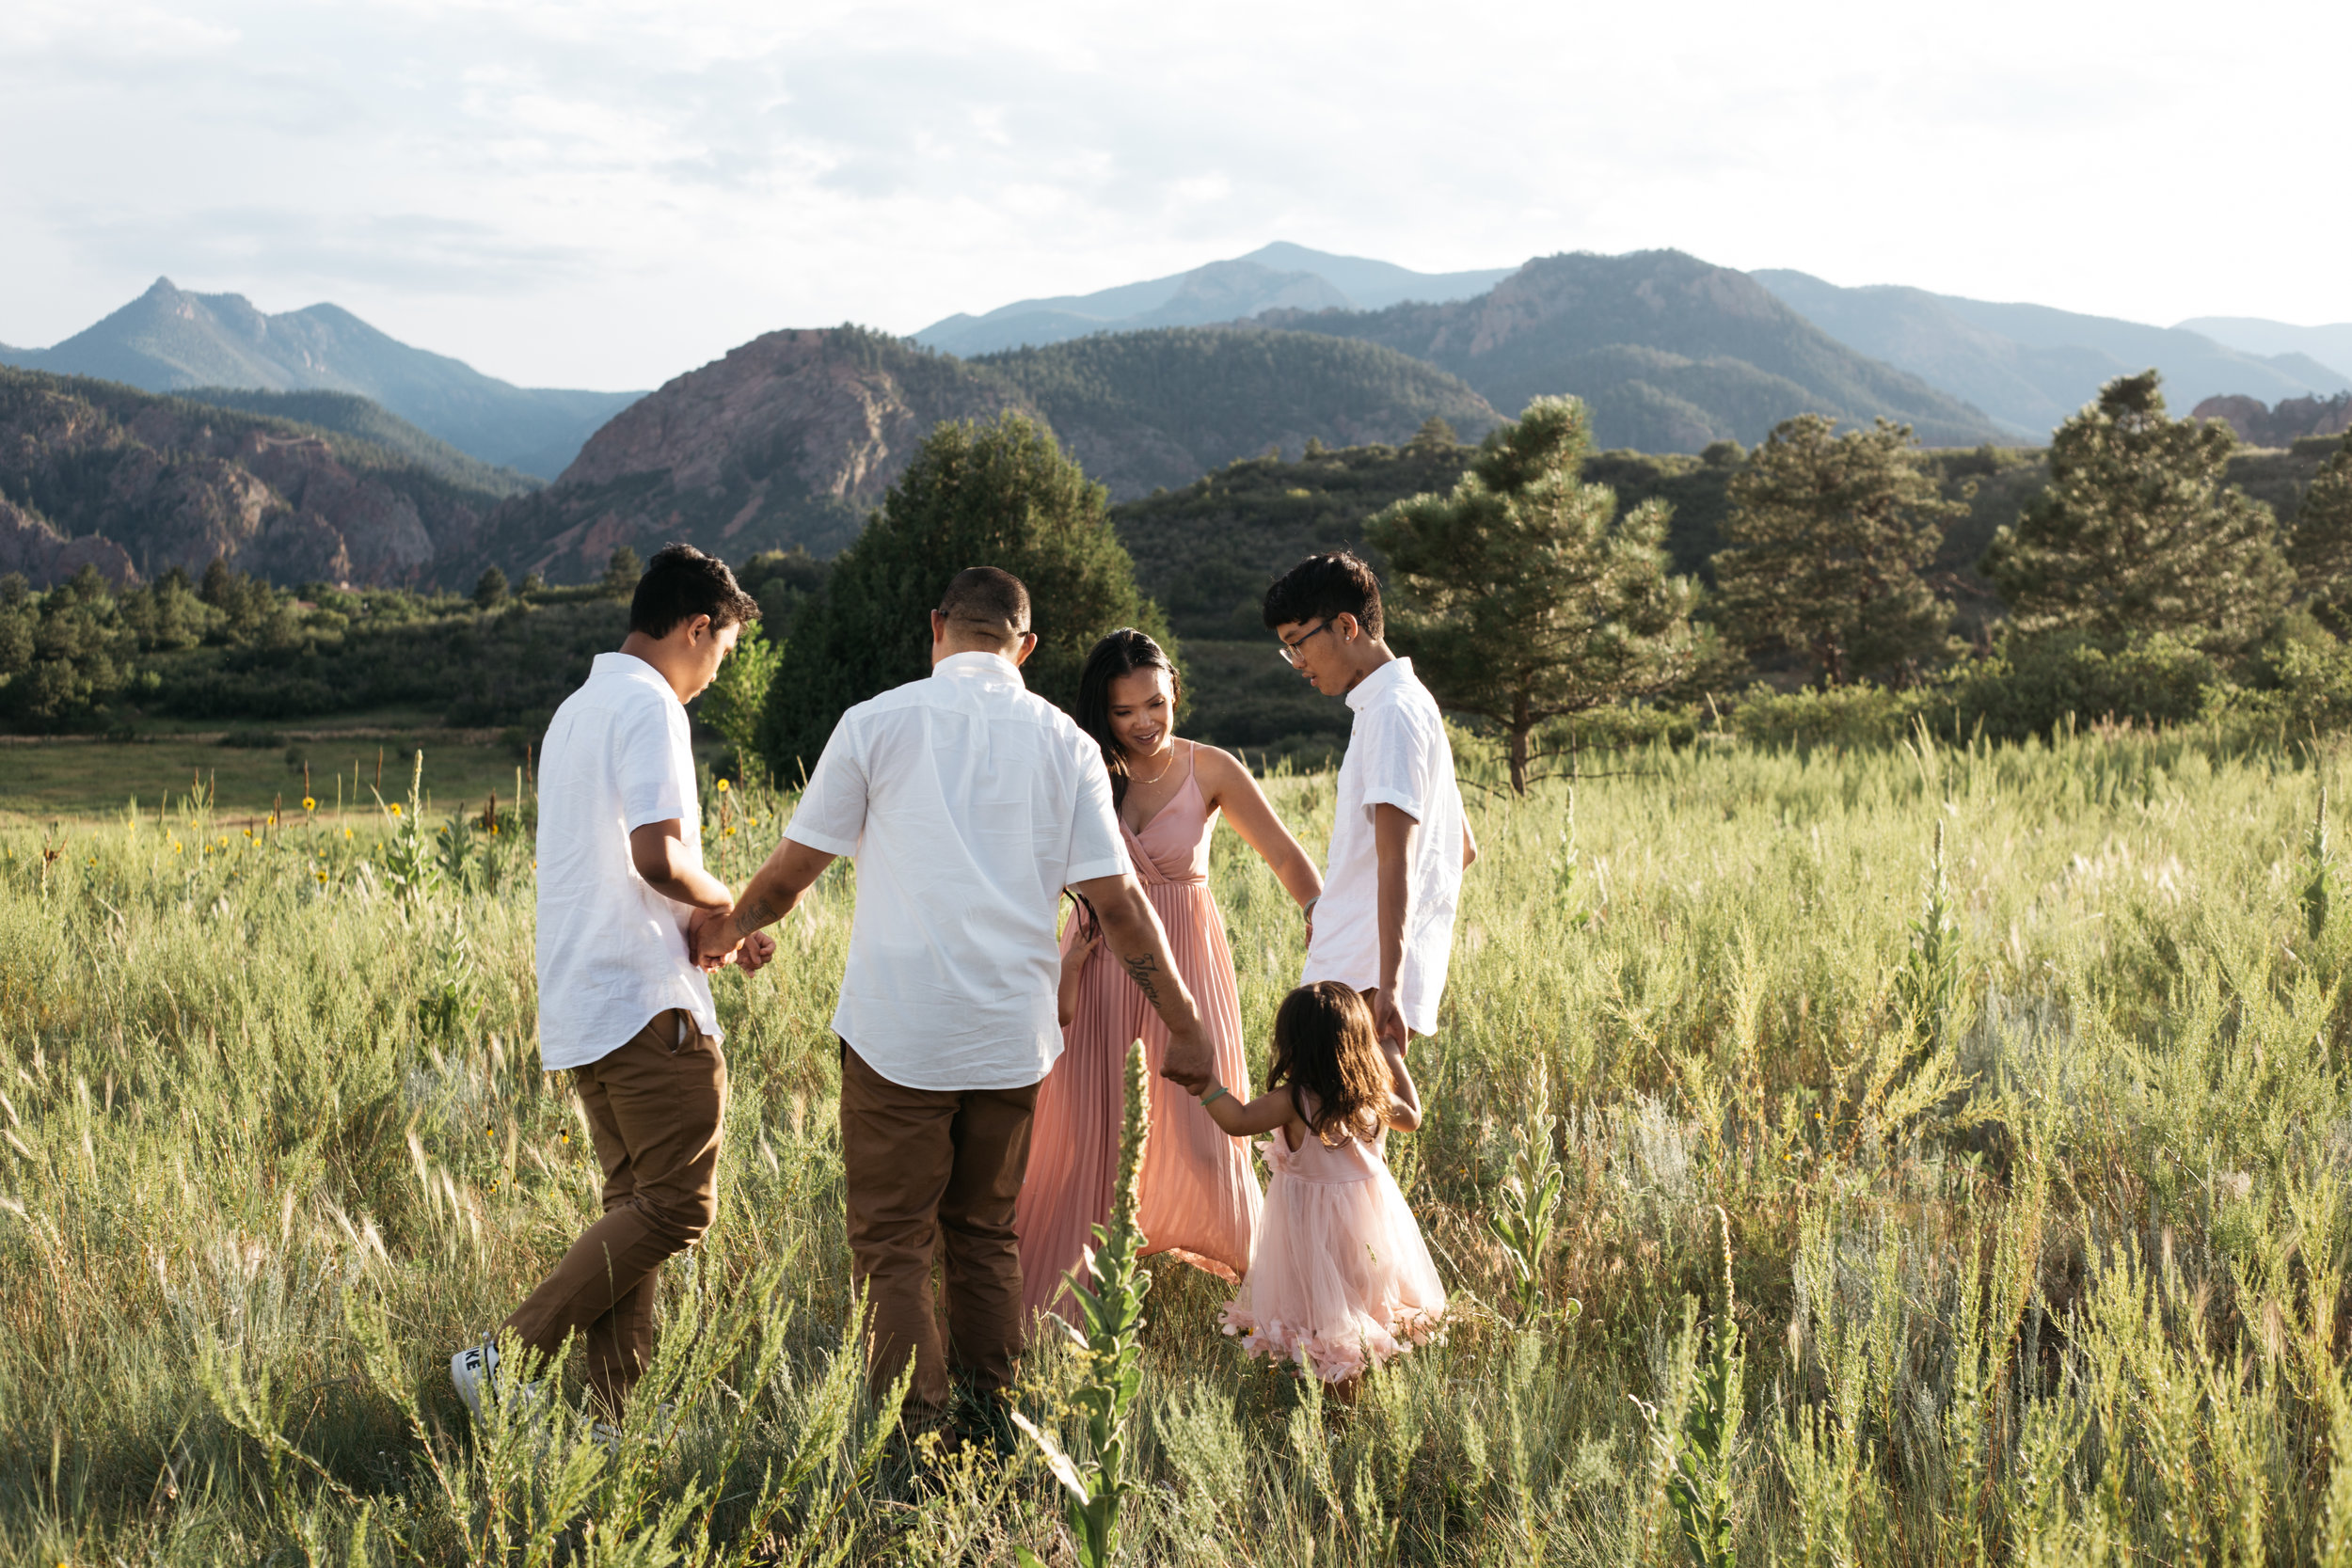 colorado-springs-family-photography-elan-photographie-studio-73.jpg